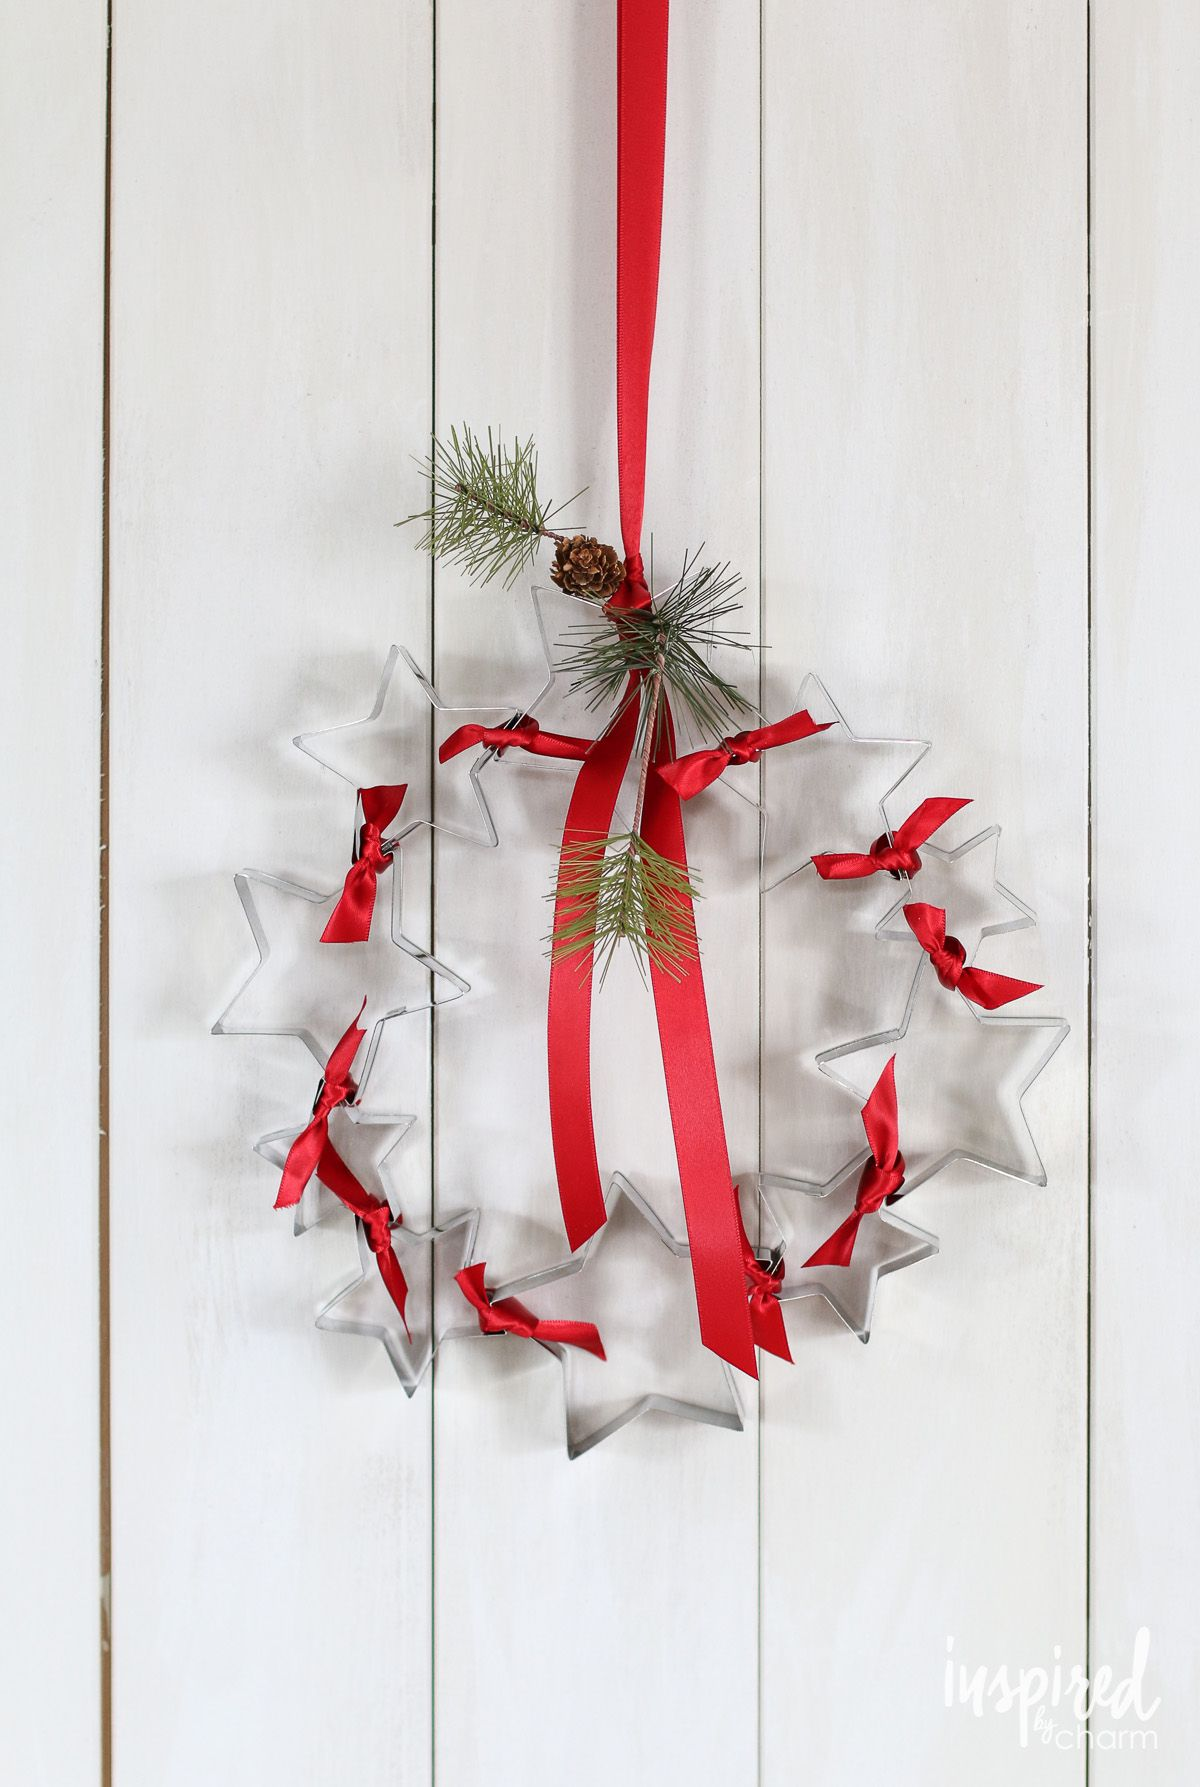 67 Diy Christmas Wreath Ideas How To Make Holiday Wreaths Crafts